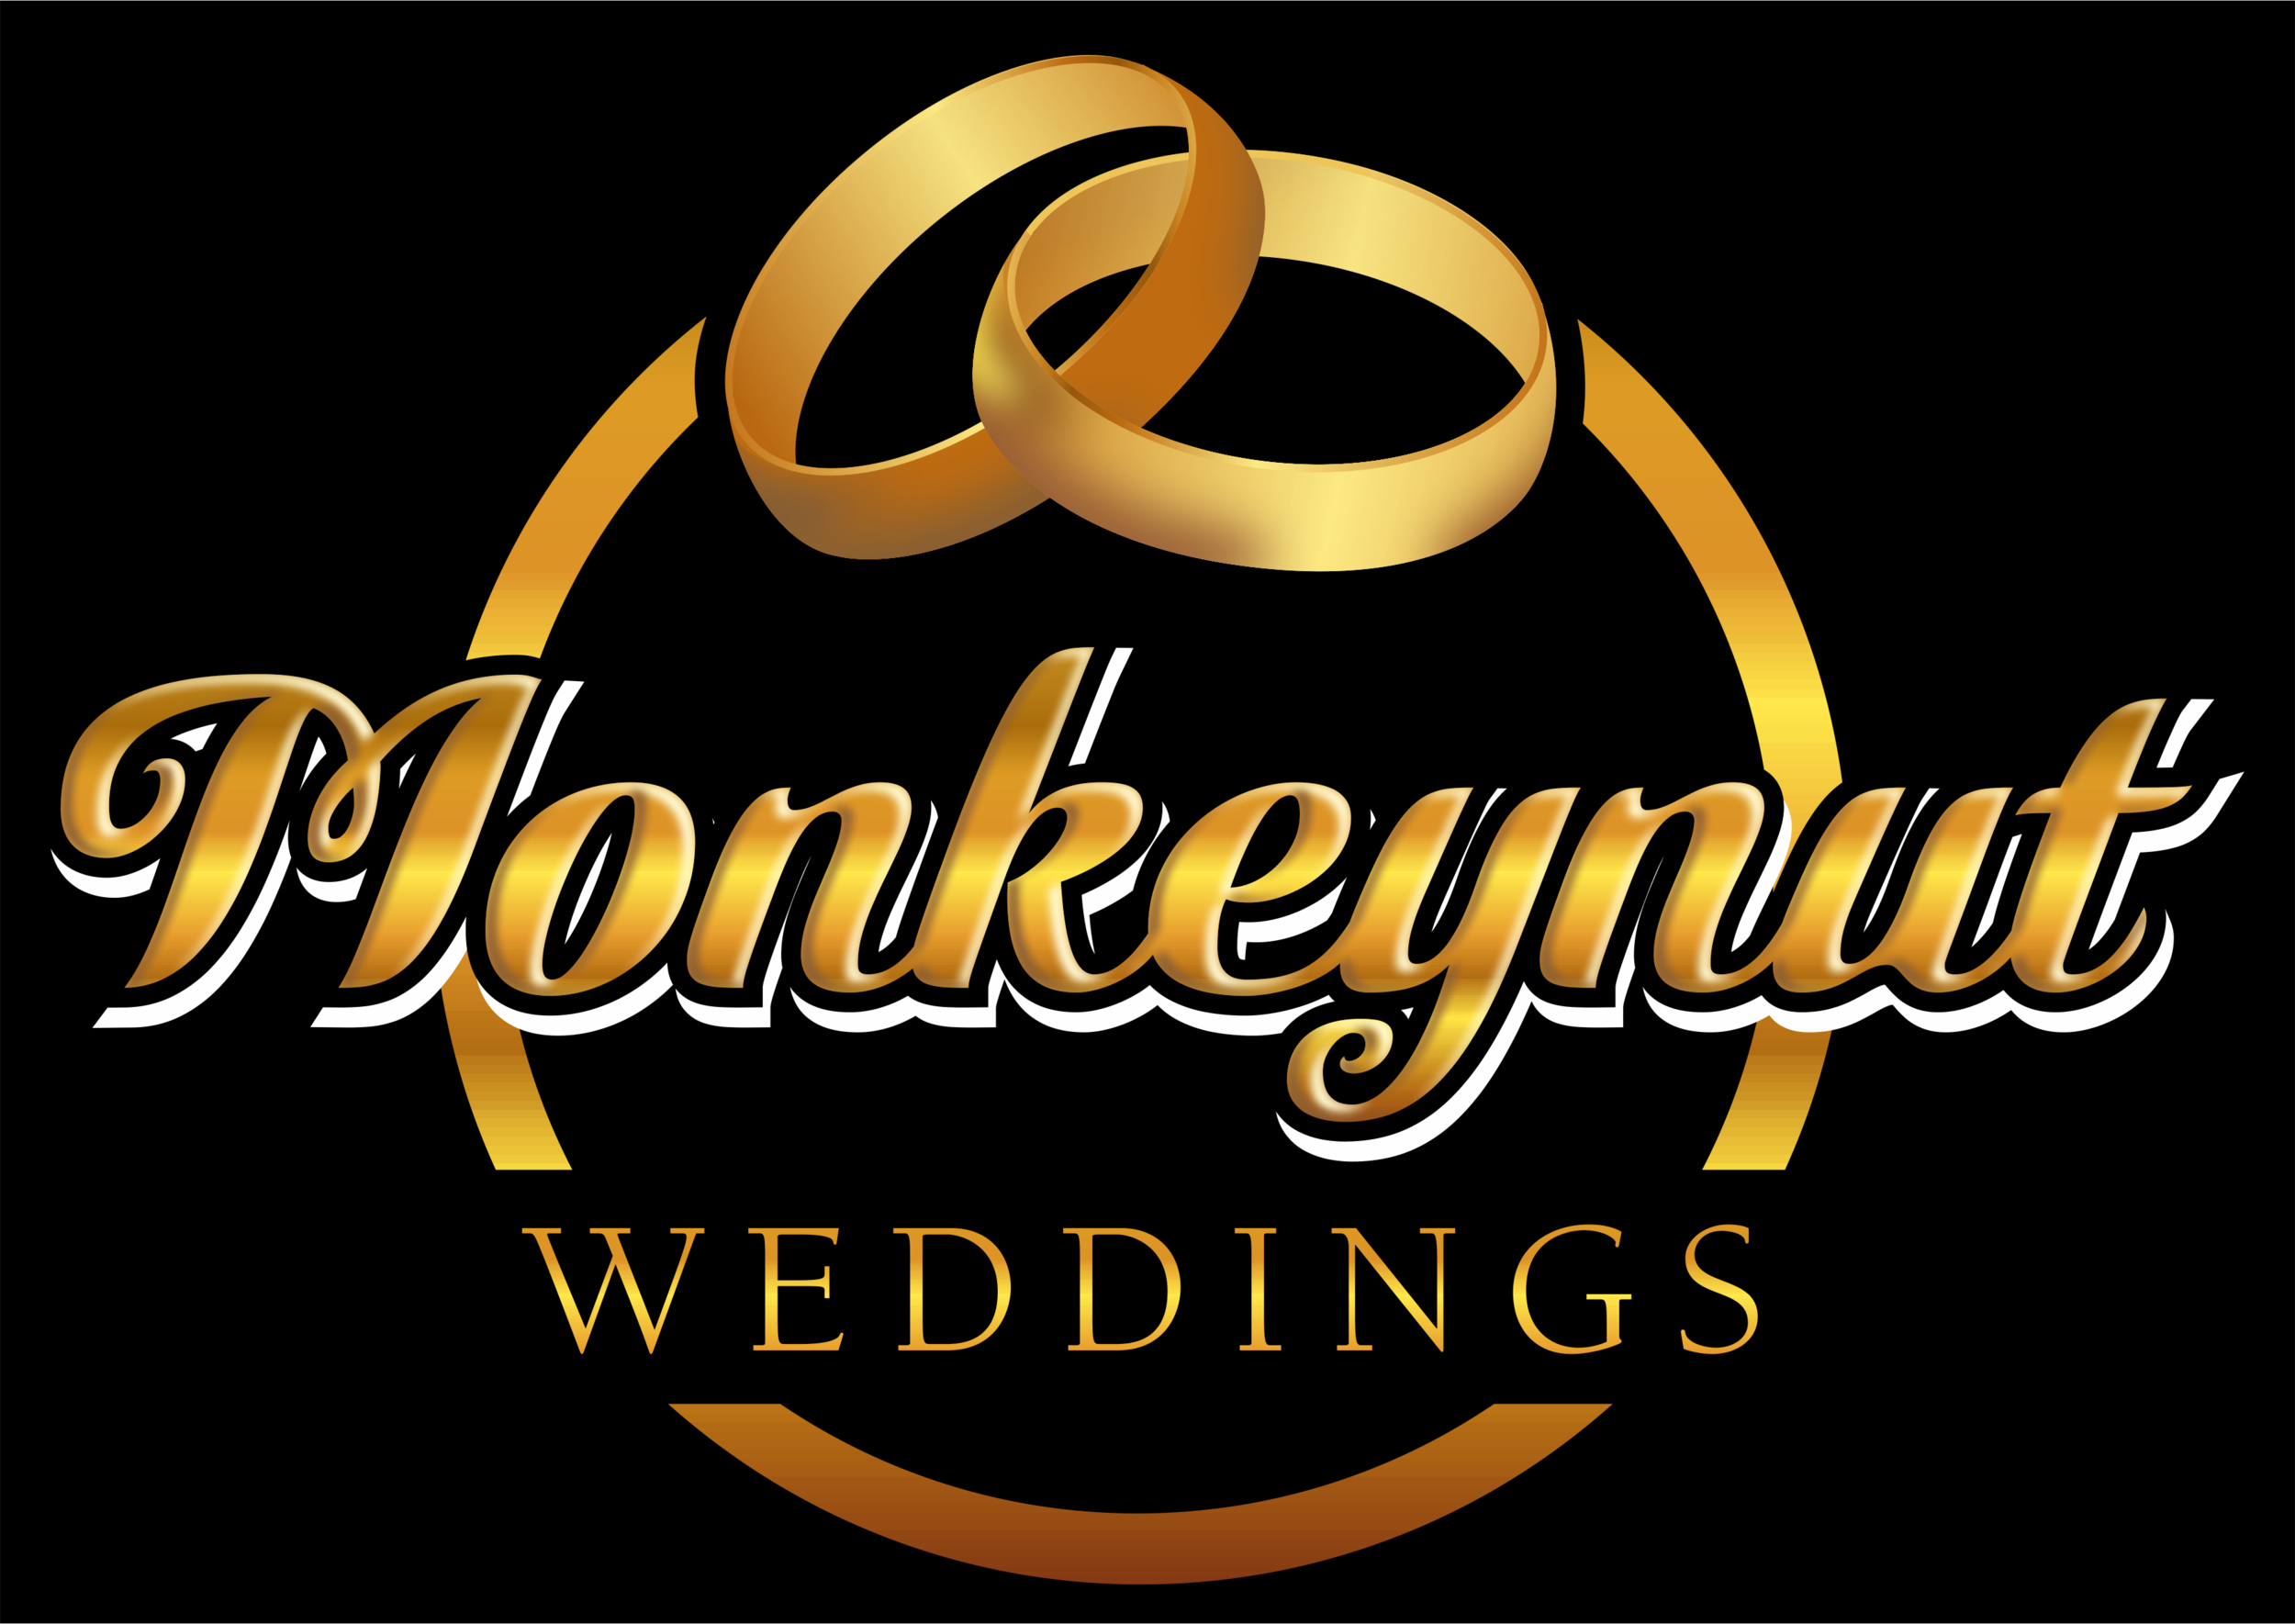 Monkeynut Entertainment provide premium wedding entertainment and advice to Hampshire and the South Coast